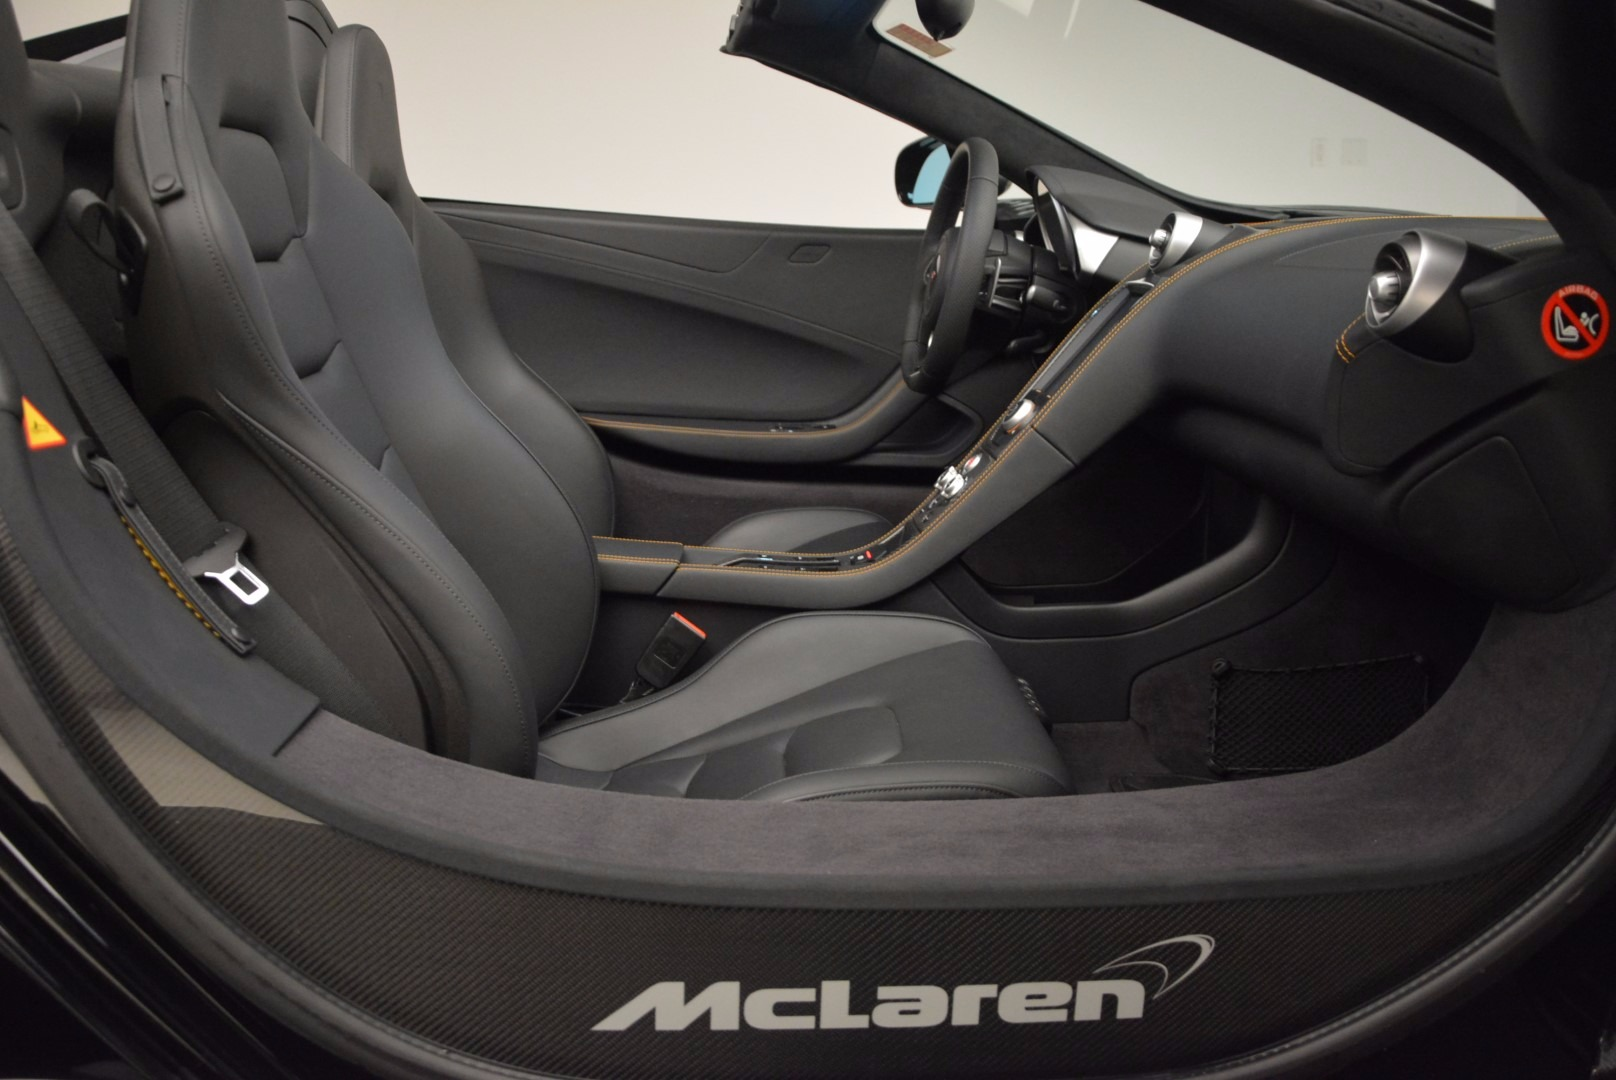 Used 2013 McLaren 12C Spider  For Sale In Greenwich, CT. Alfa Romeo of Greenwich, 3093 973_p29